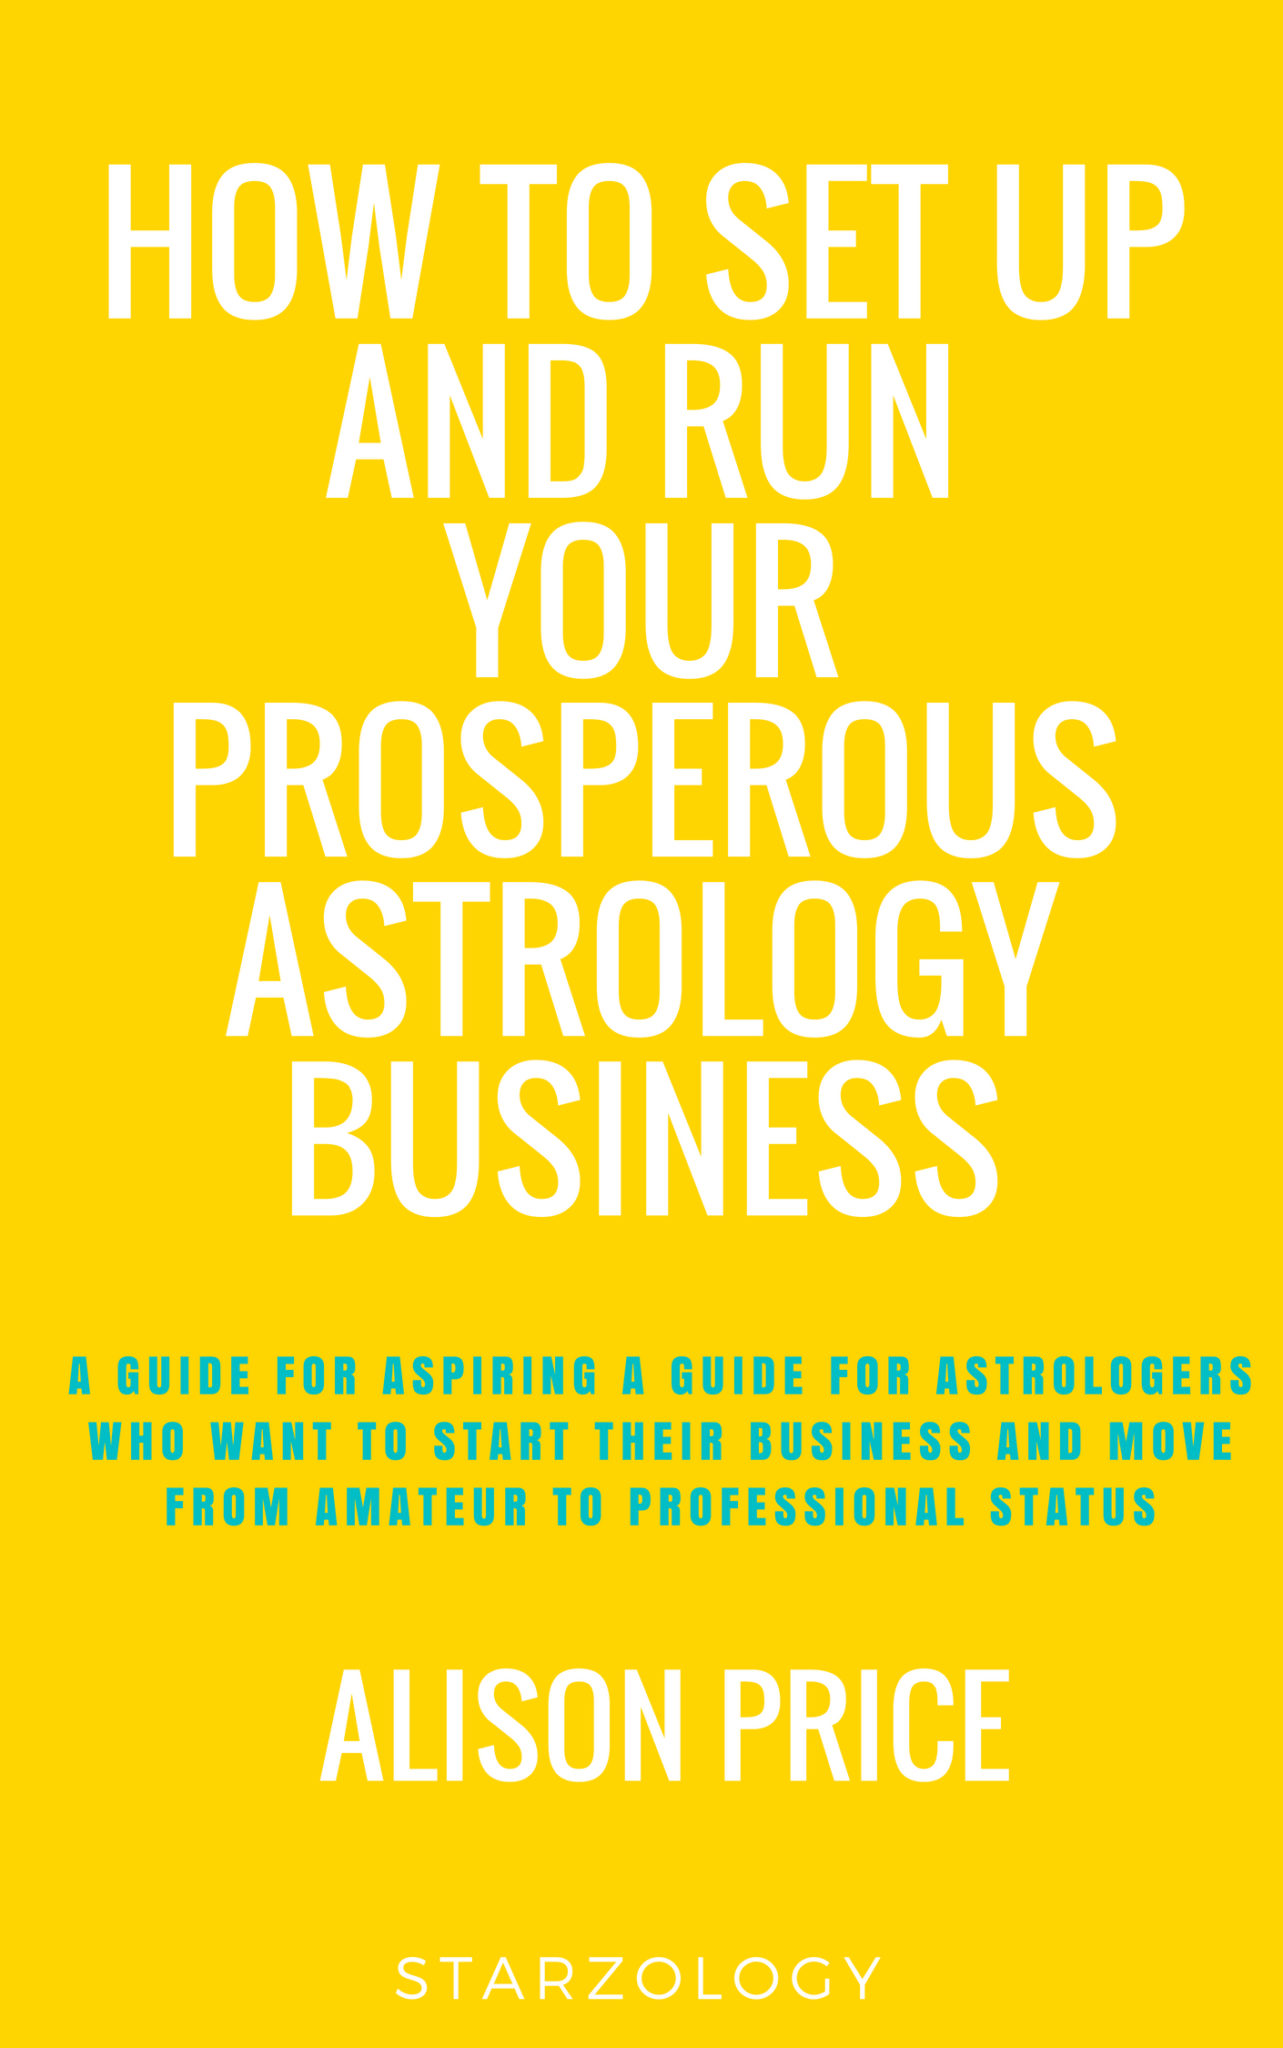 How to Set-up and Run Your Prosperous Astrology Business by